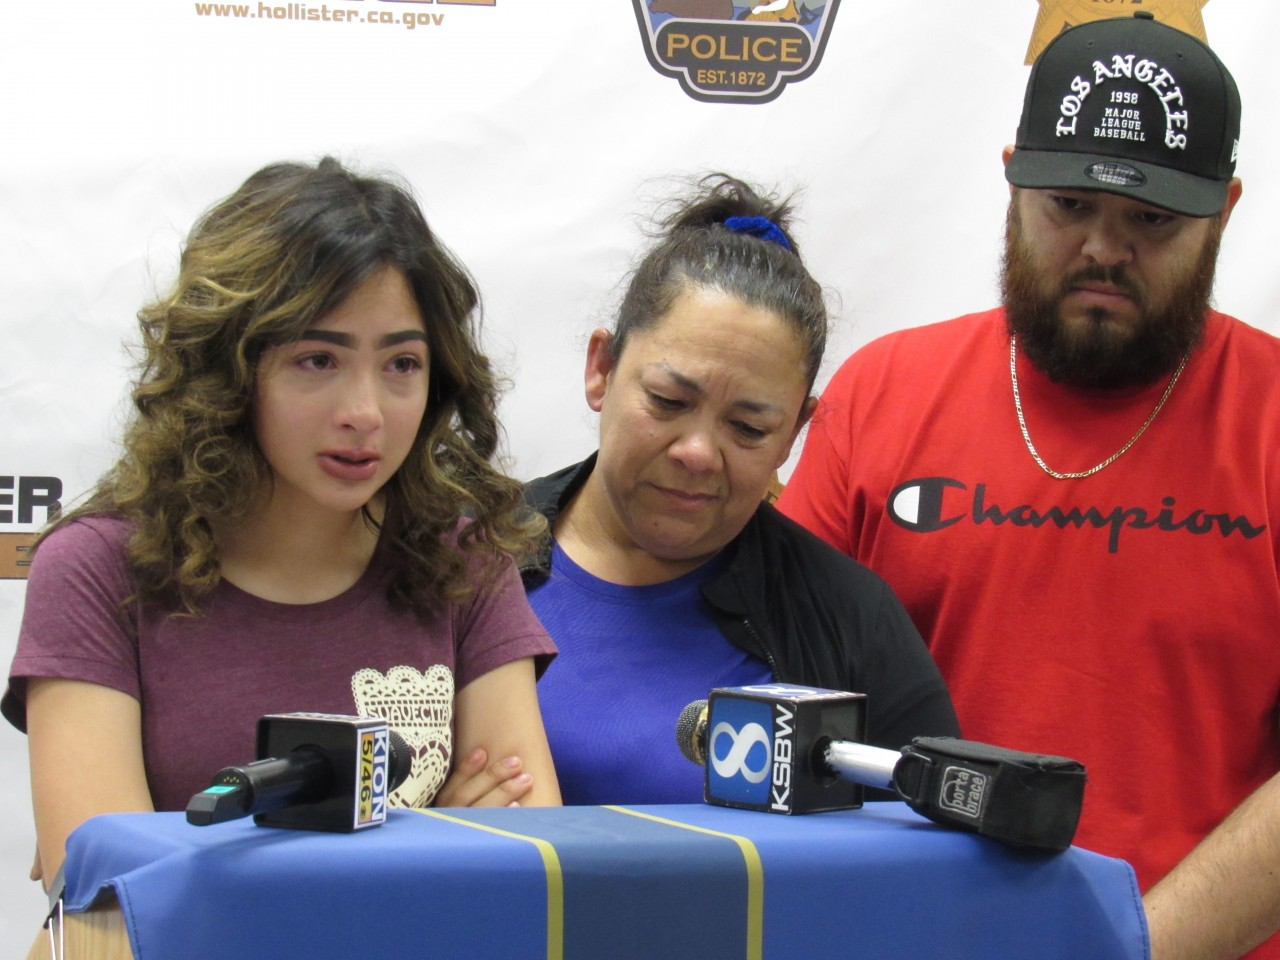 (Left to right) Camila Zendejas, Marisela Zedejas, and Jesus Ruiz at the July 13 press conference. Photo by Noe Magaña.